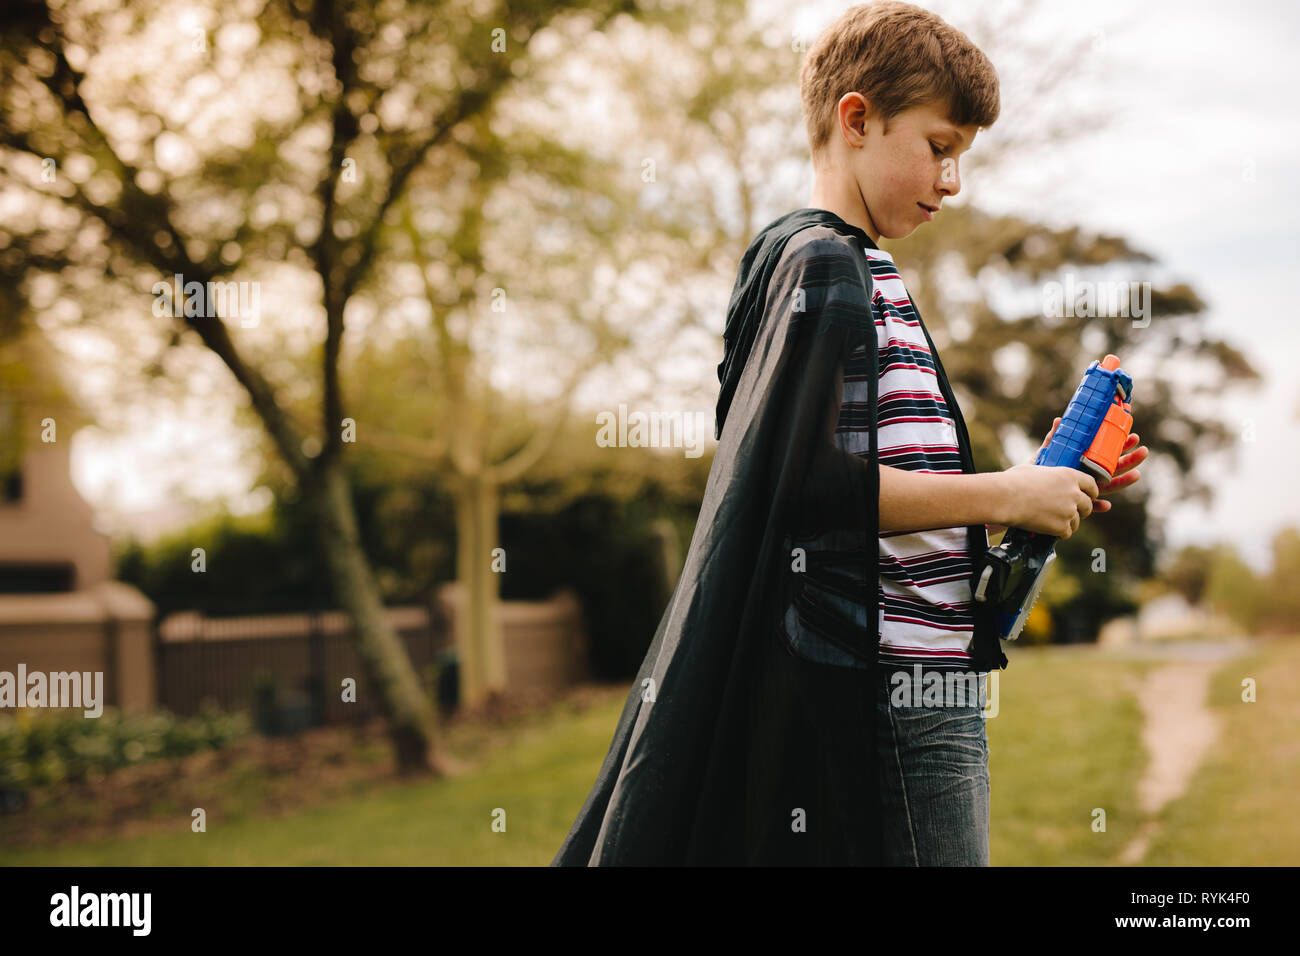 Side view of a young boys wearing a cape playing with toy gun outdoors. Boy with cape pretending to a superhero. - Stock Image